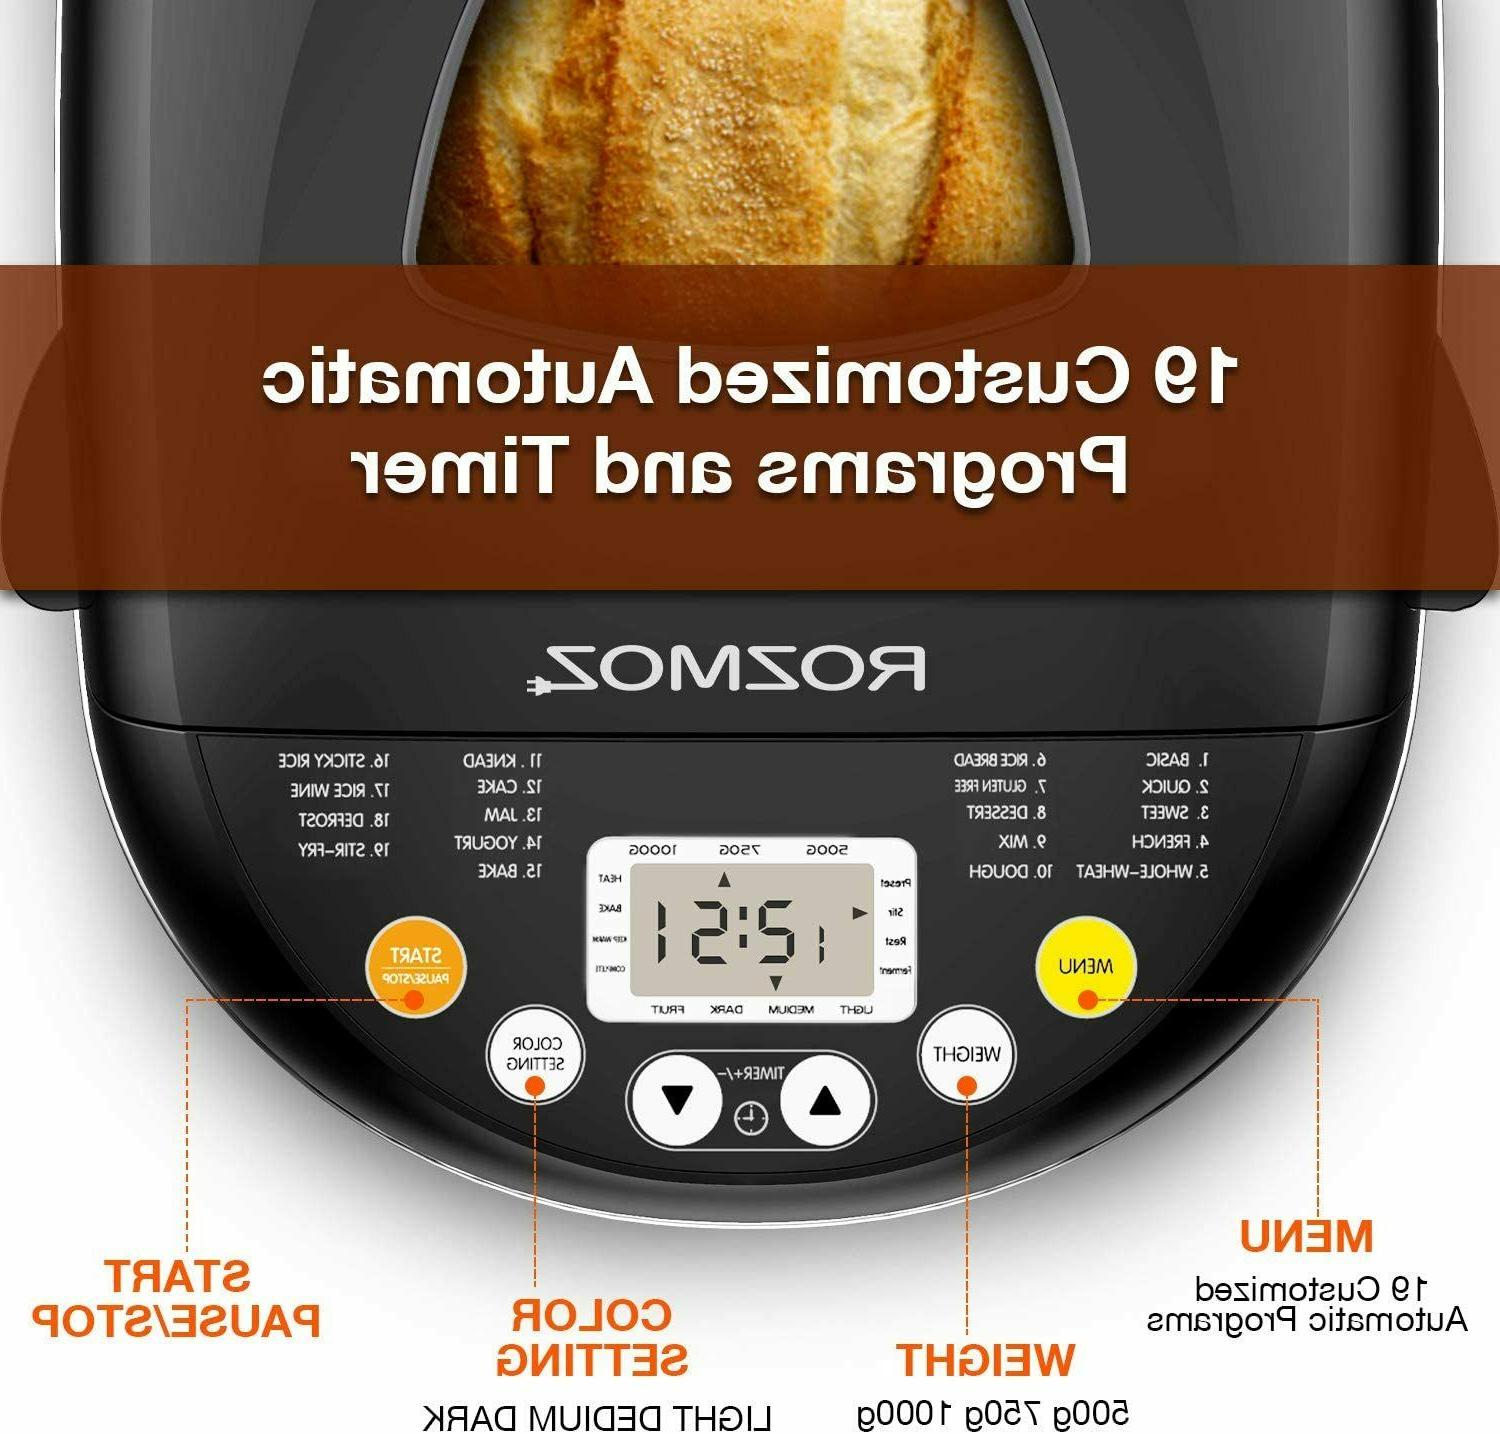 19-in-1 Programmable Stainless Steel Automatic Bread Maker 2LB,Keep Warm